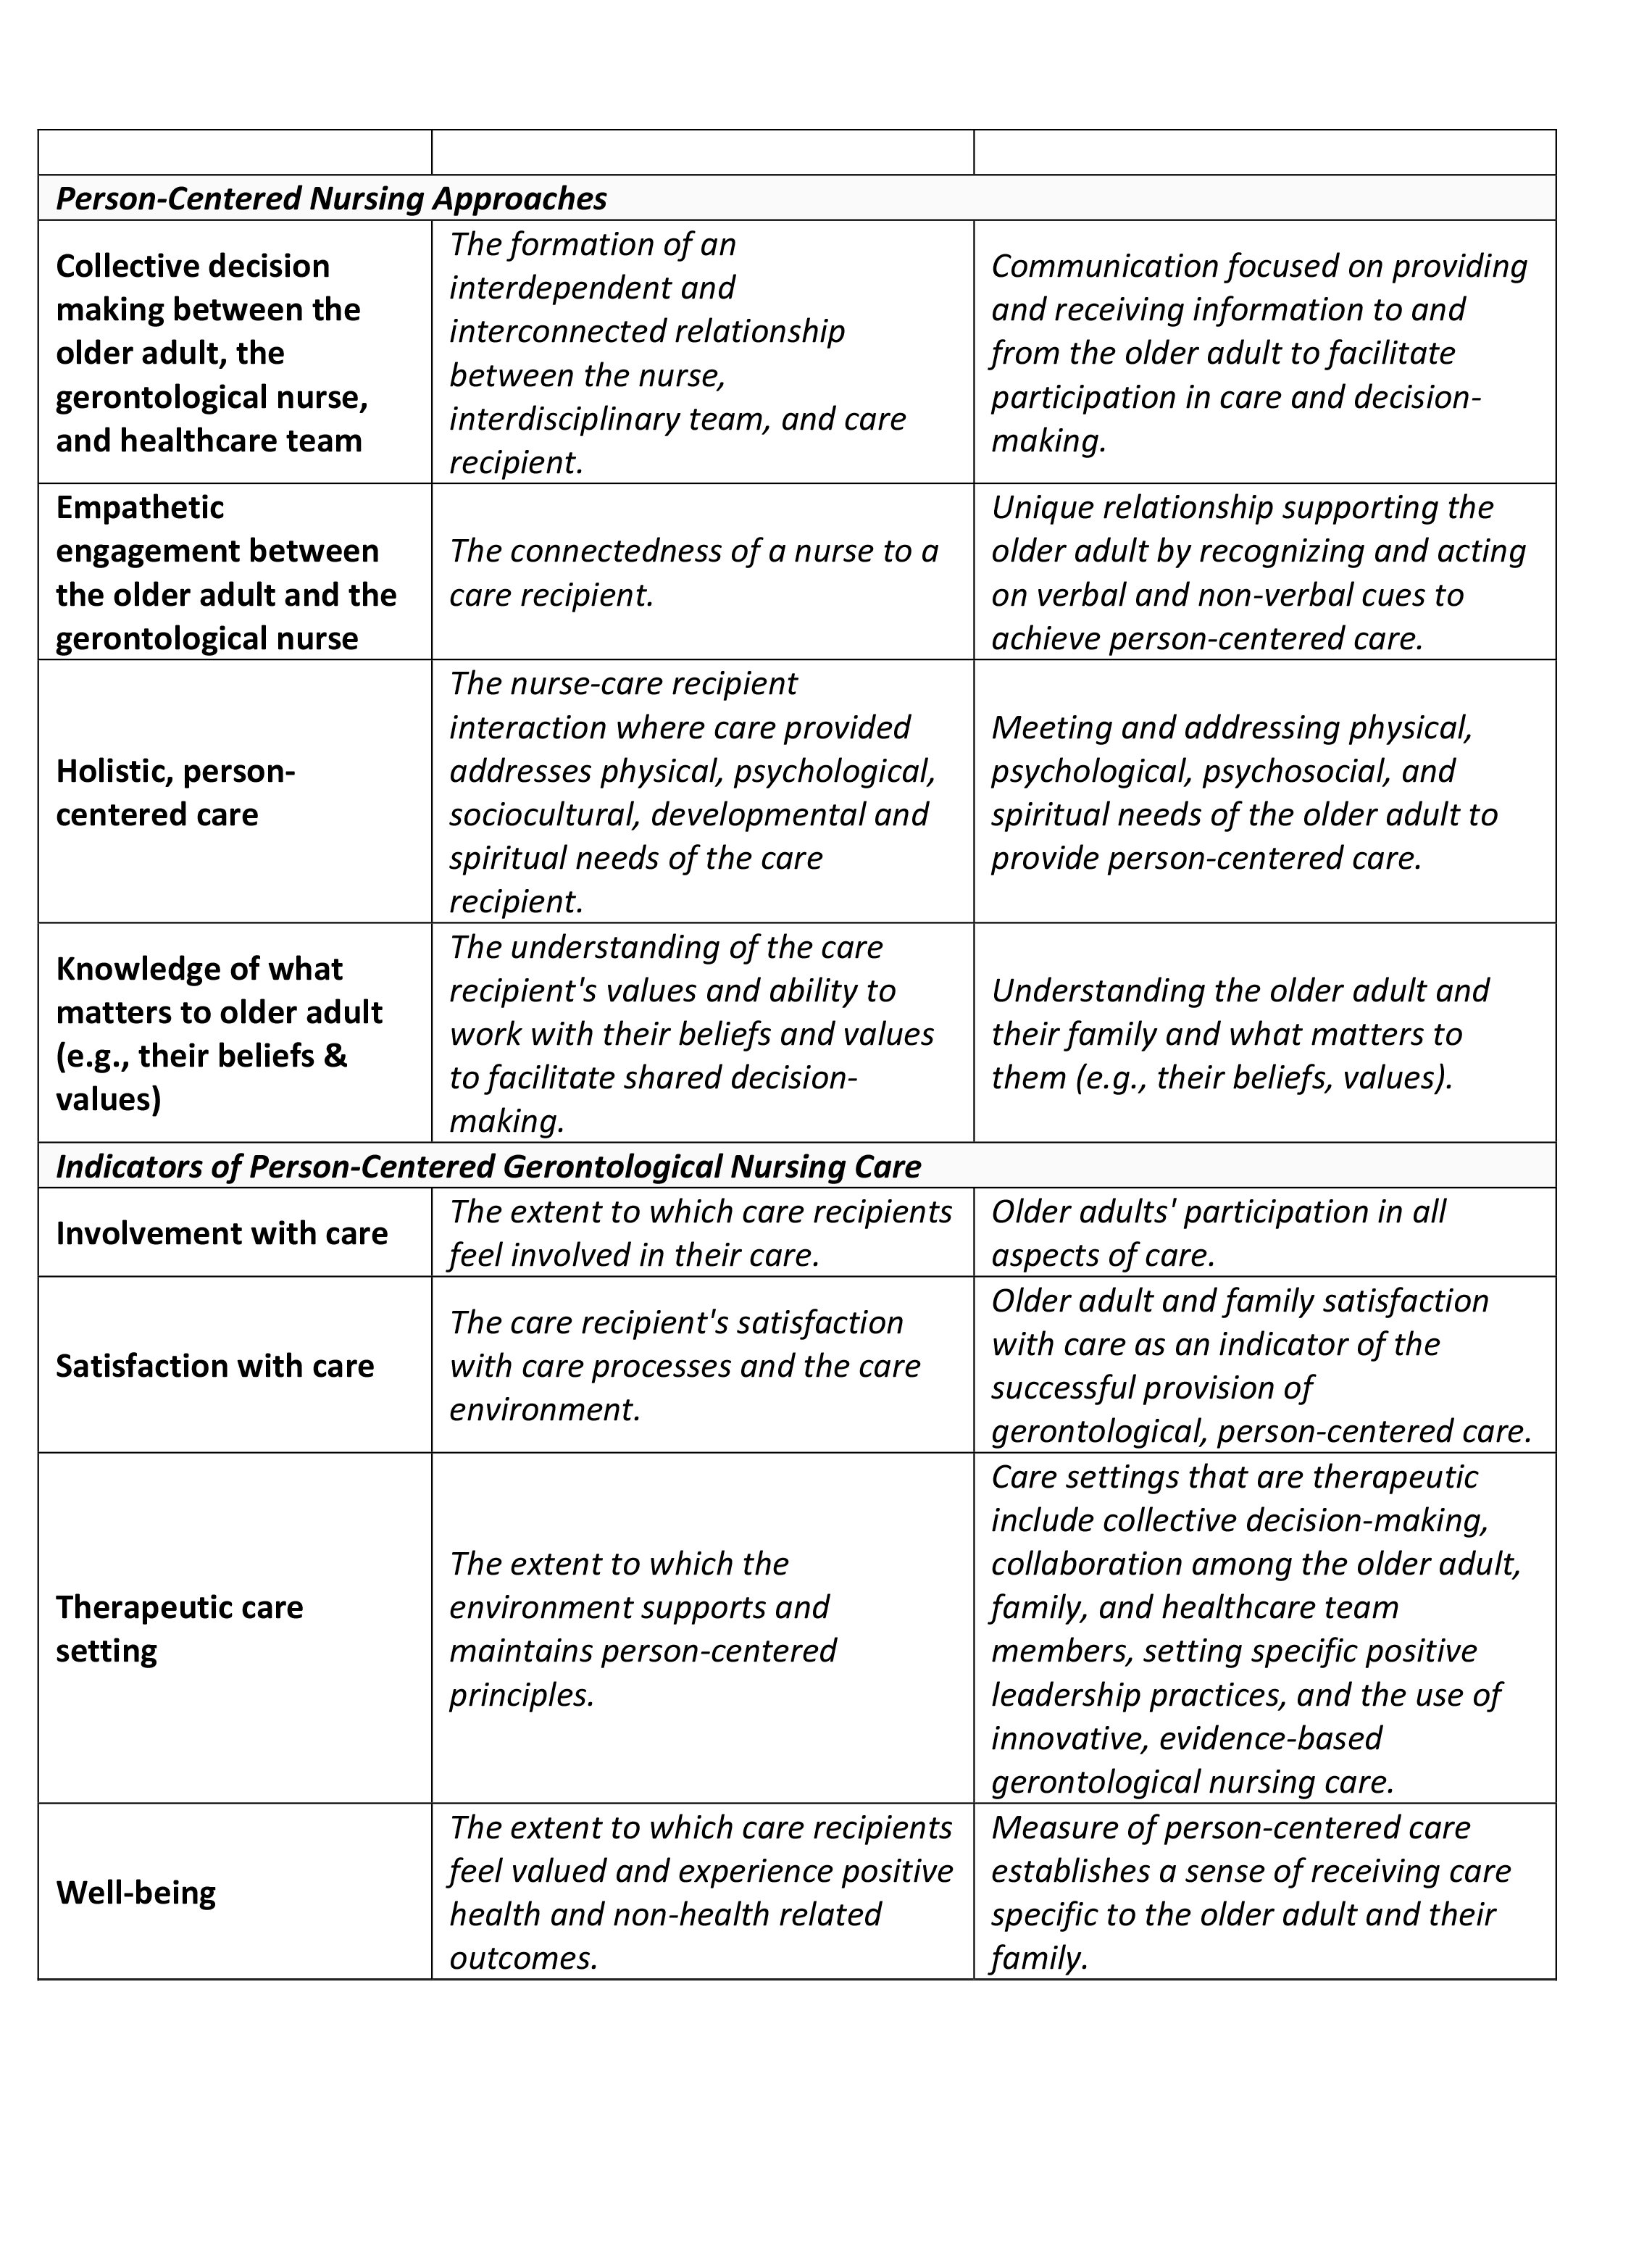 Adapted Definitions of the Person-Centered Nursing Framework Concepts for Gerontological Nurses